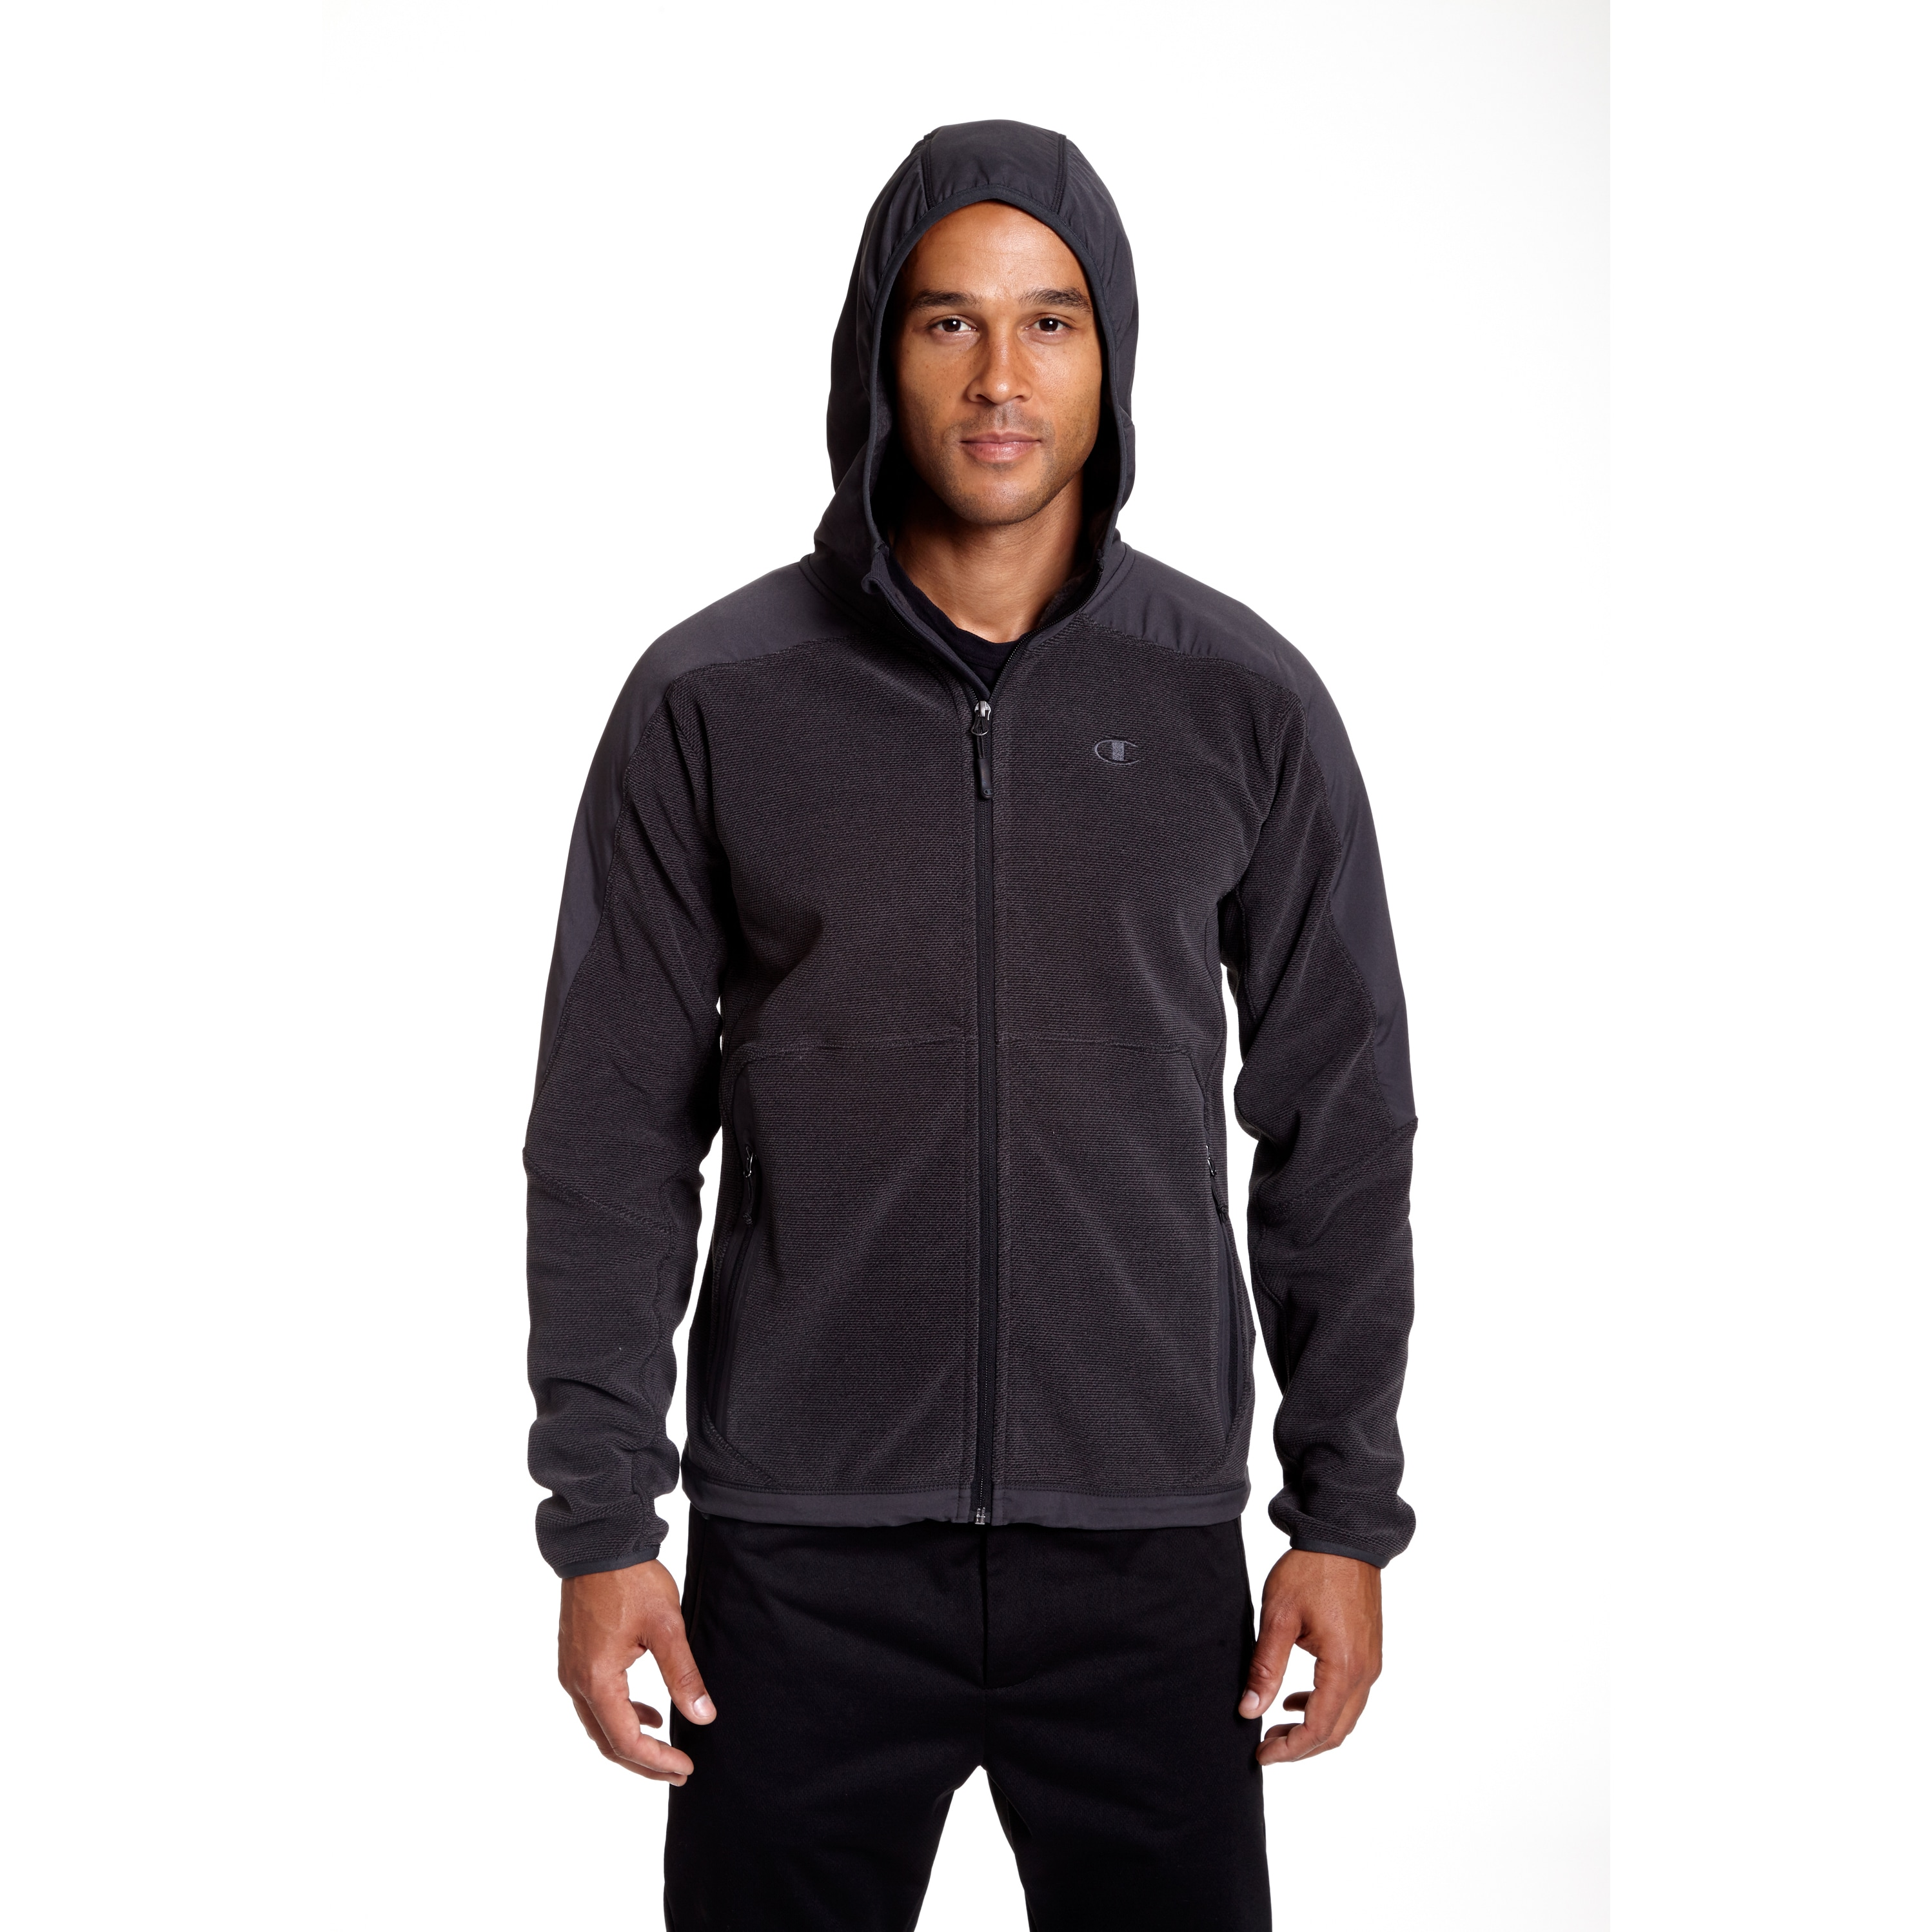 a549f525e79 Shop Champion Men s Big and Tall 4-way Stretch Overlay Hooded Textured  Fleece Jacket - Free Shipping Today - Overstock - 12383340